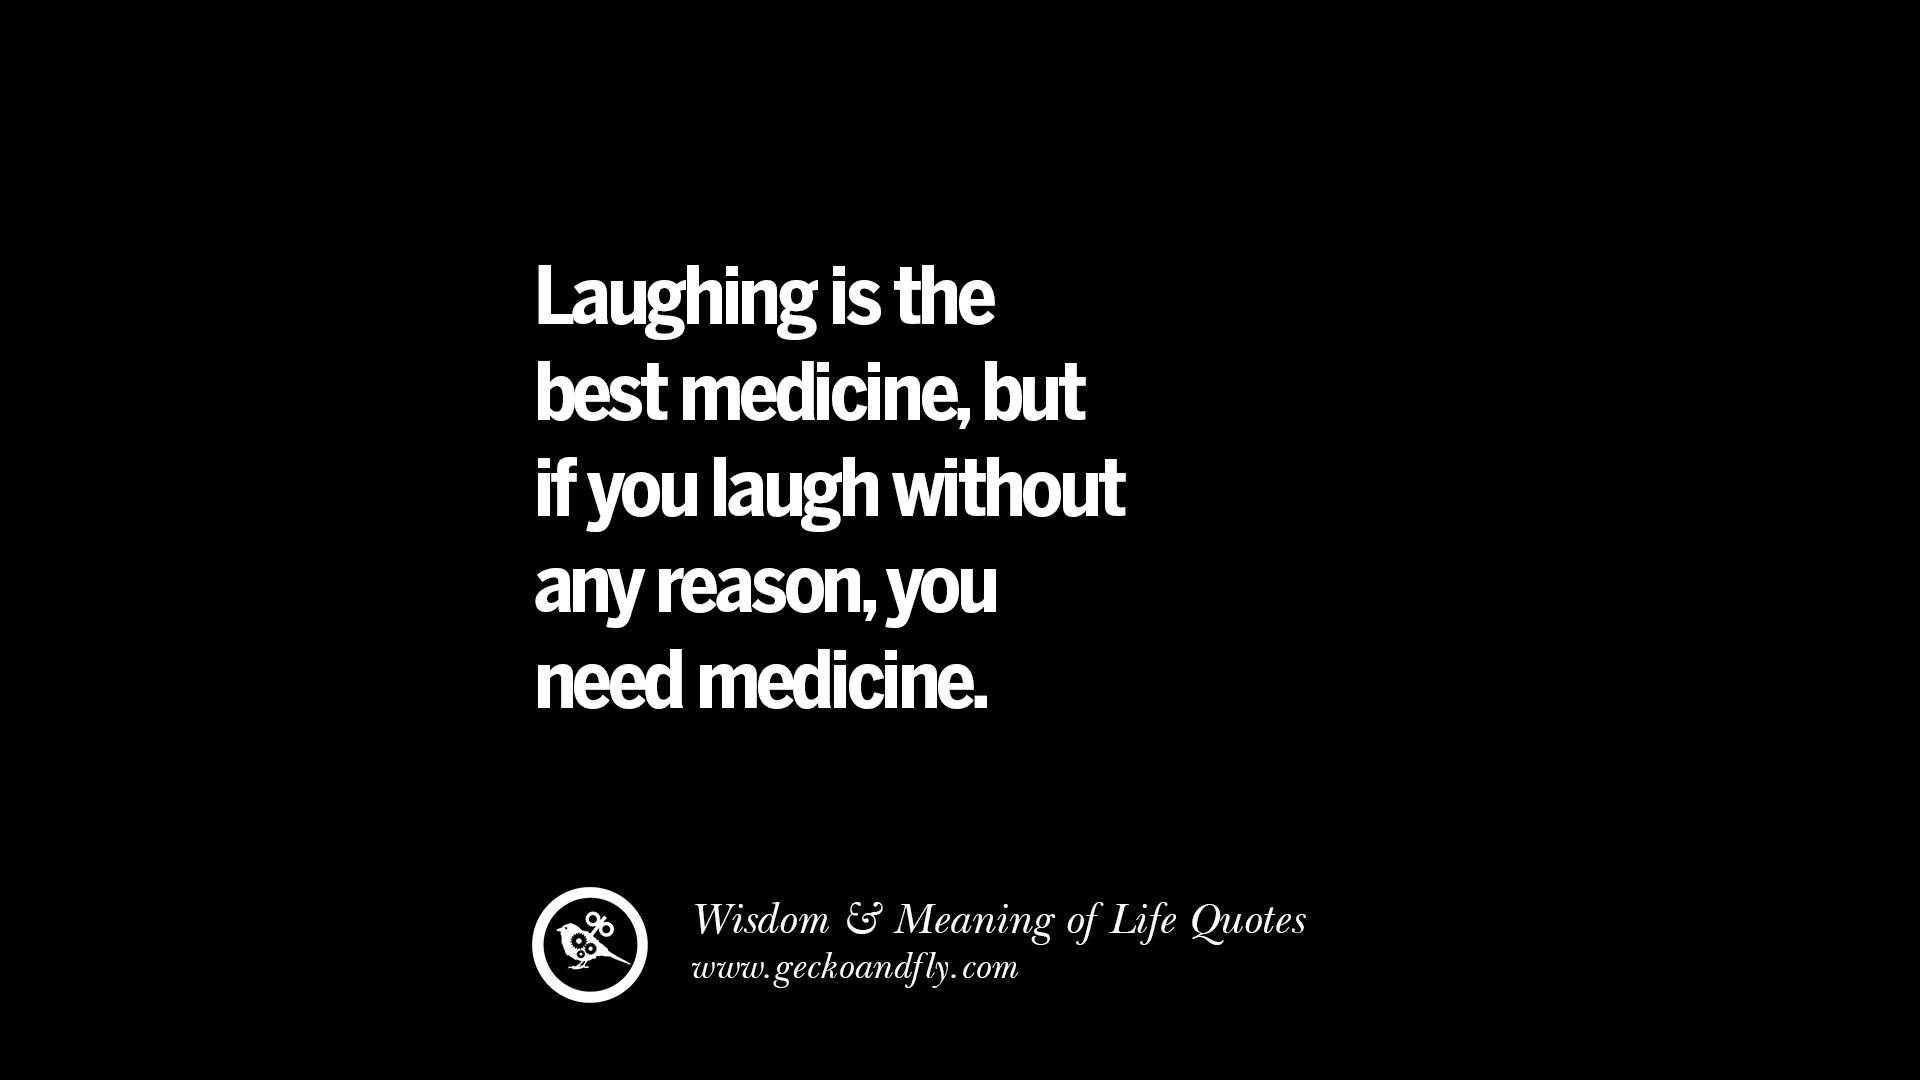 Funny Life Quotes Inspiration 24 Funny Eye Opening Quotes About Wisdom Truth And Meaning Of